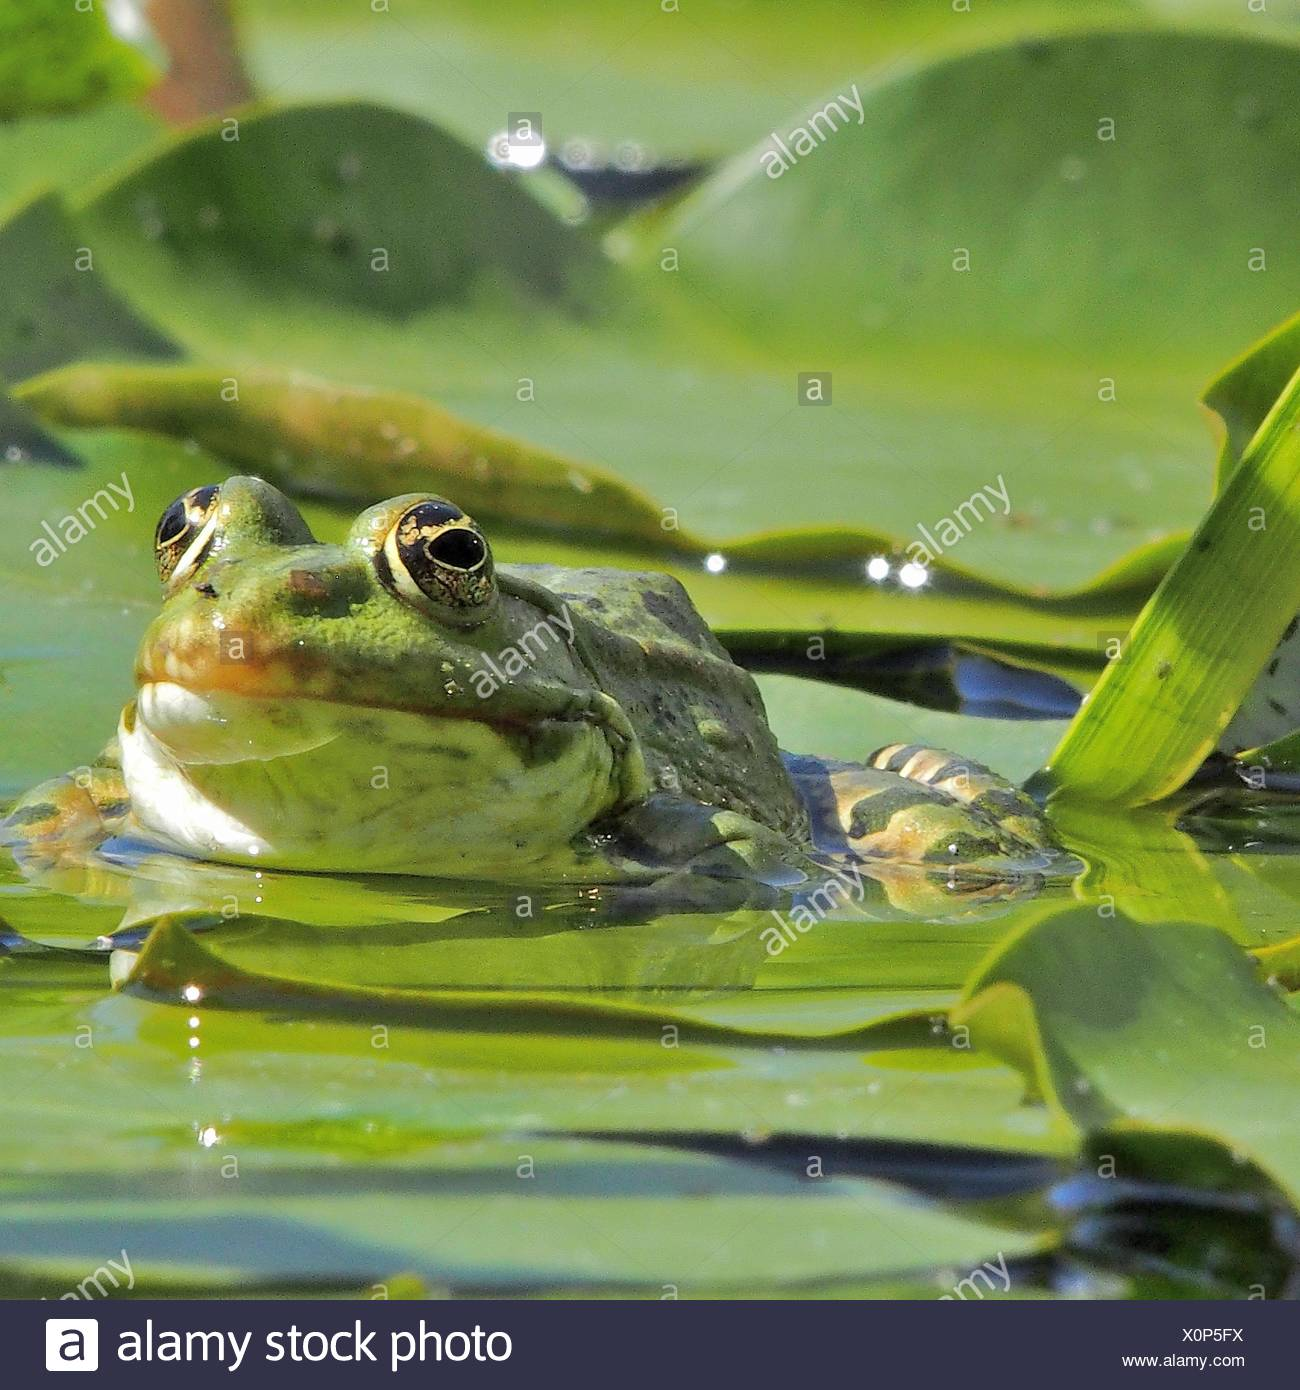 Close-Up Of Frog On Leaf In Pond - Stock Image